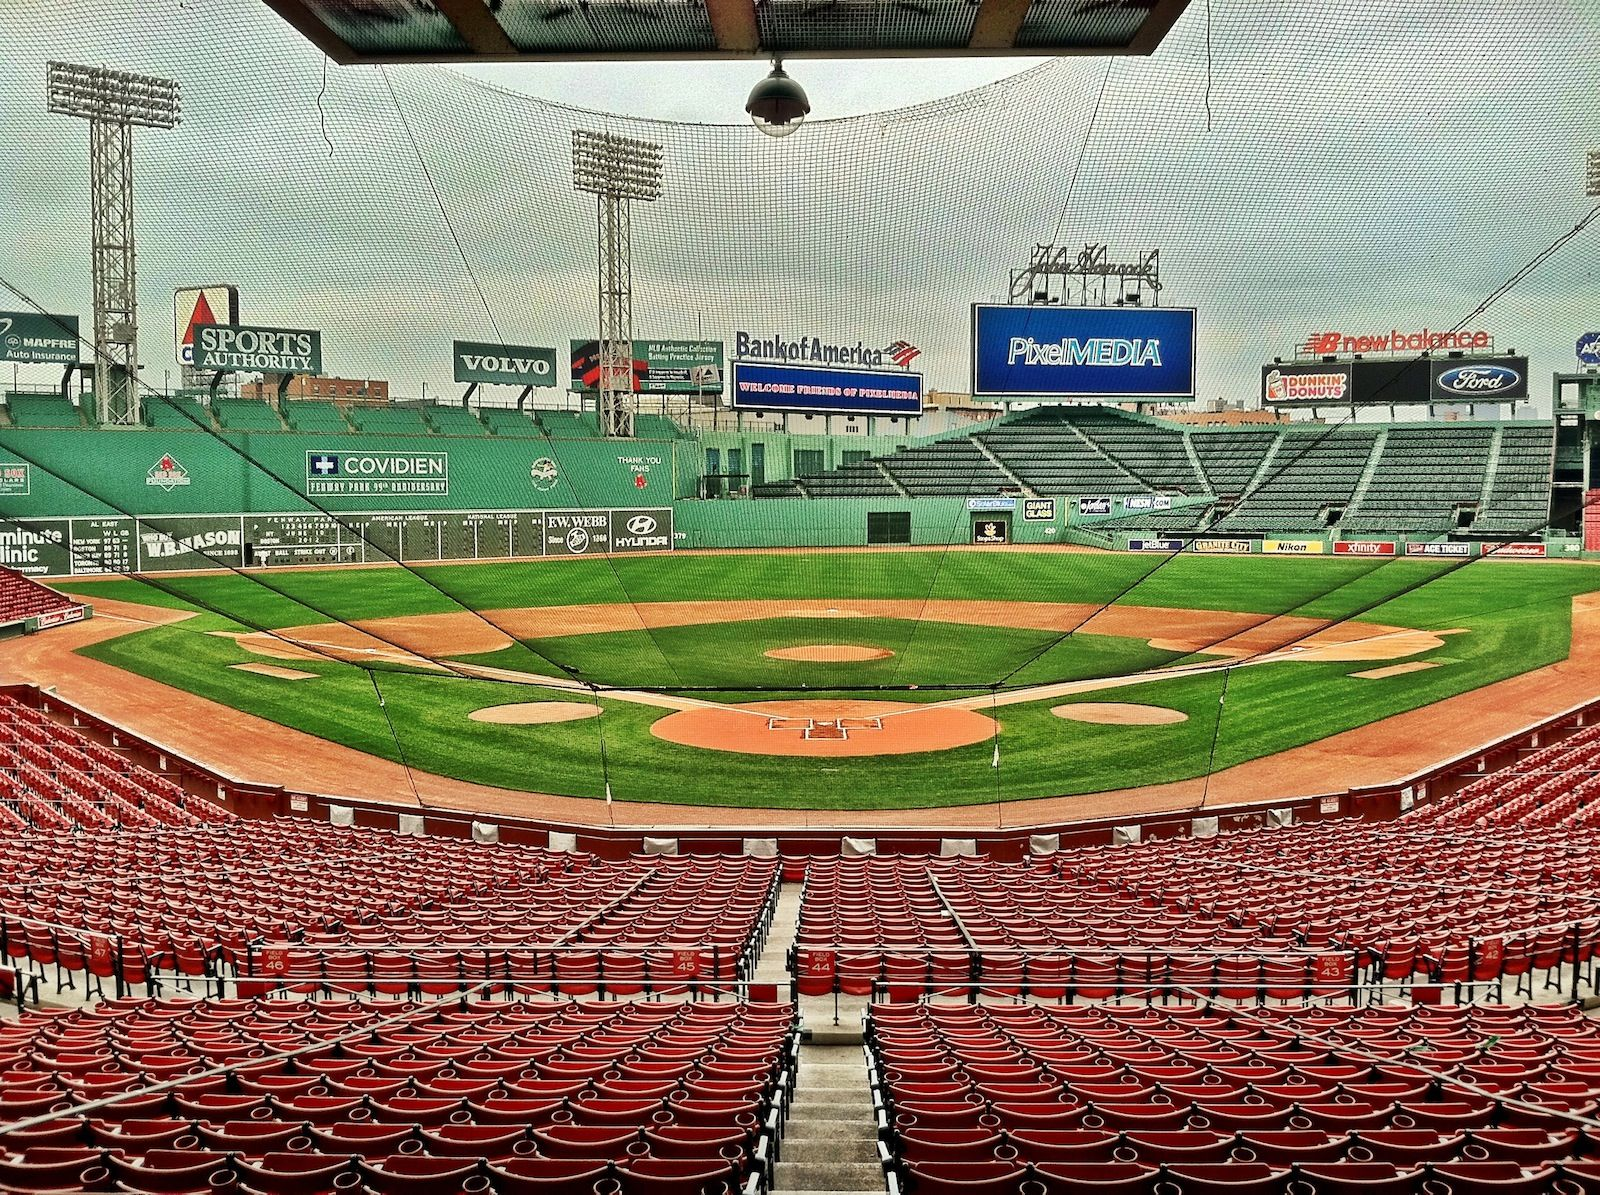 Pin By Randy Champion On Stadiums Fenway Park Red Sox Baseball Baseball Stadium